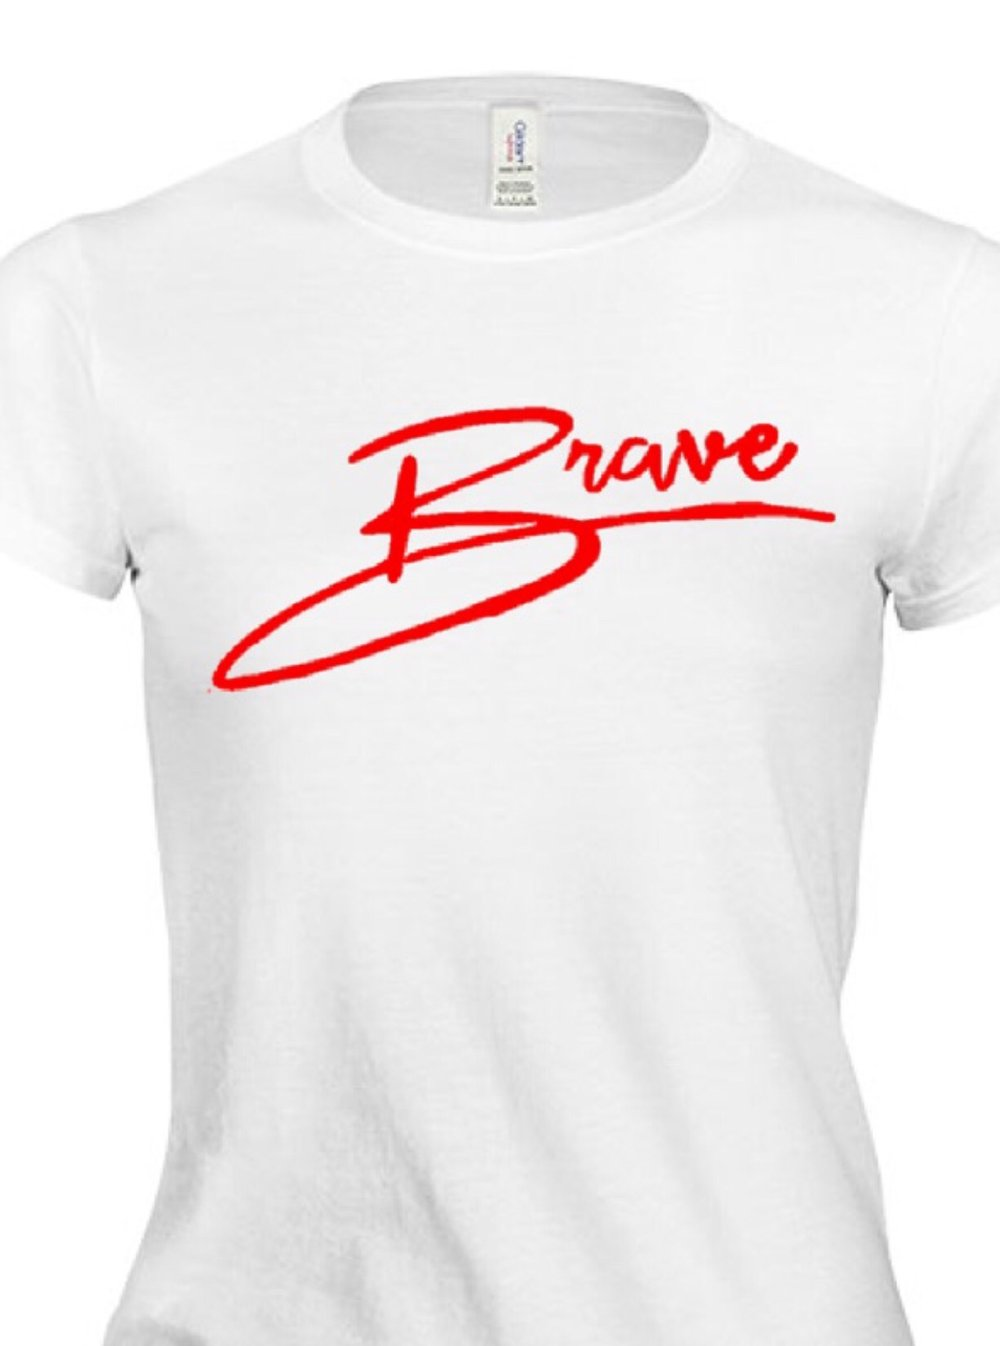 BRAVE T-SHIRT - (RED, BLACK, BLUE & PINK)$20